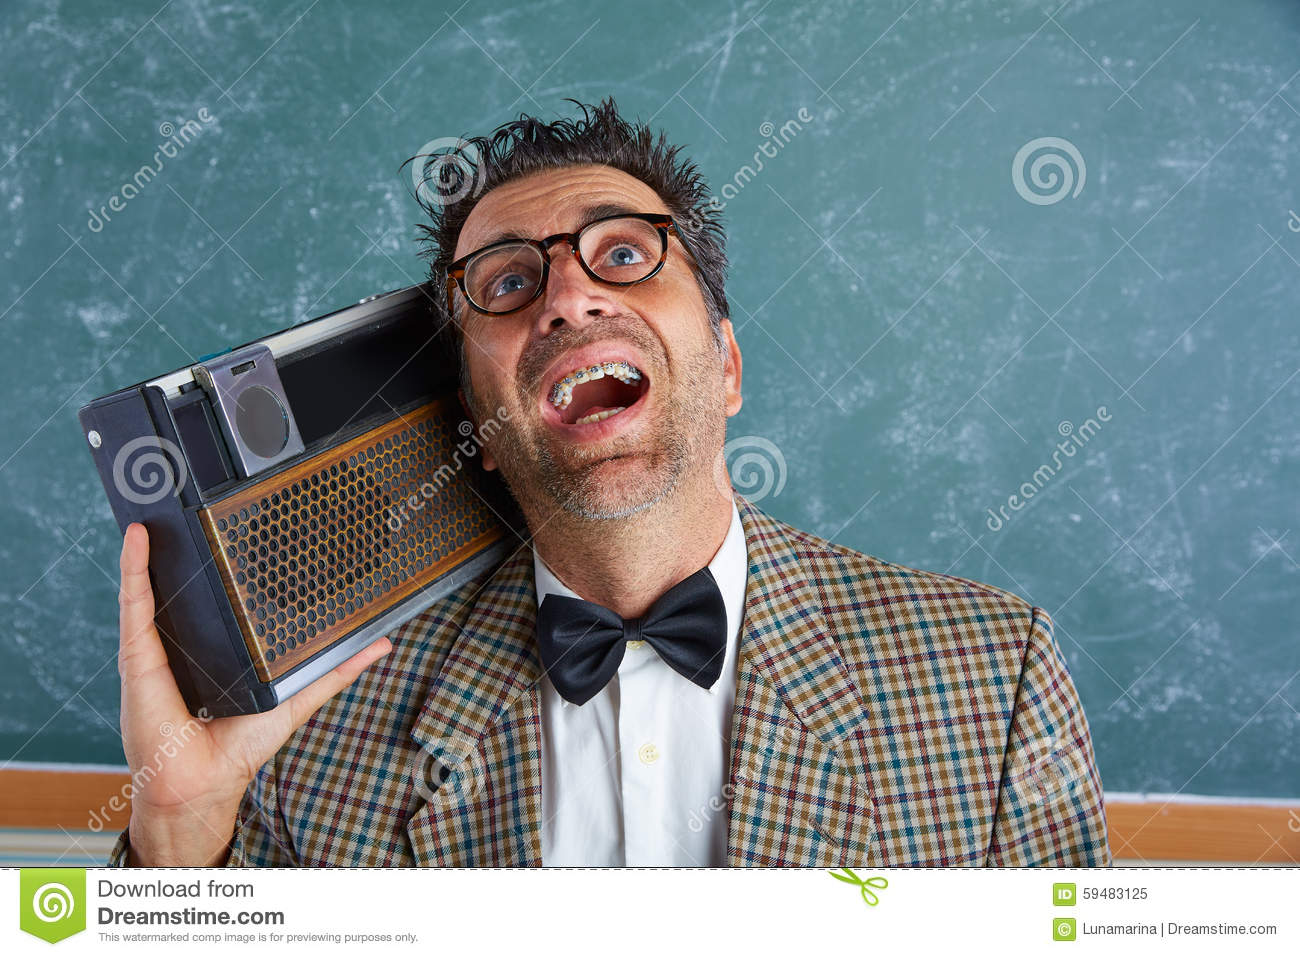 4b0108c15591 Nerd silly retro teacher man with braces and vintage radio and crazy  expression